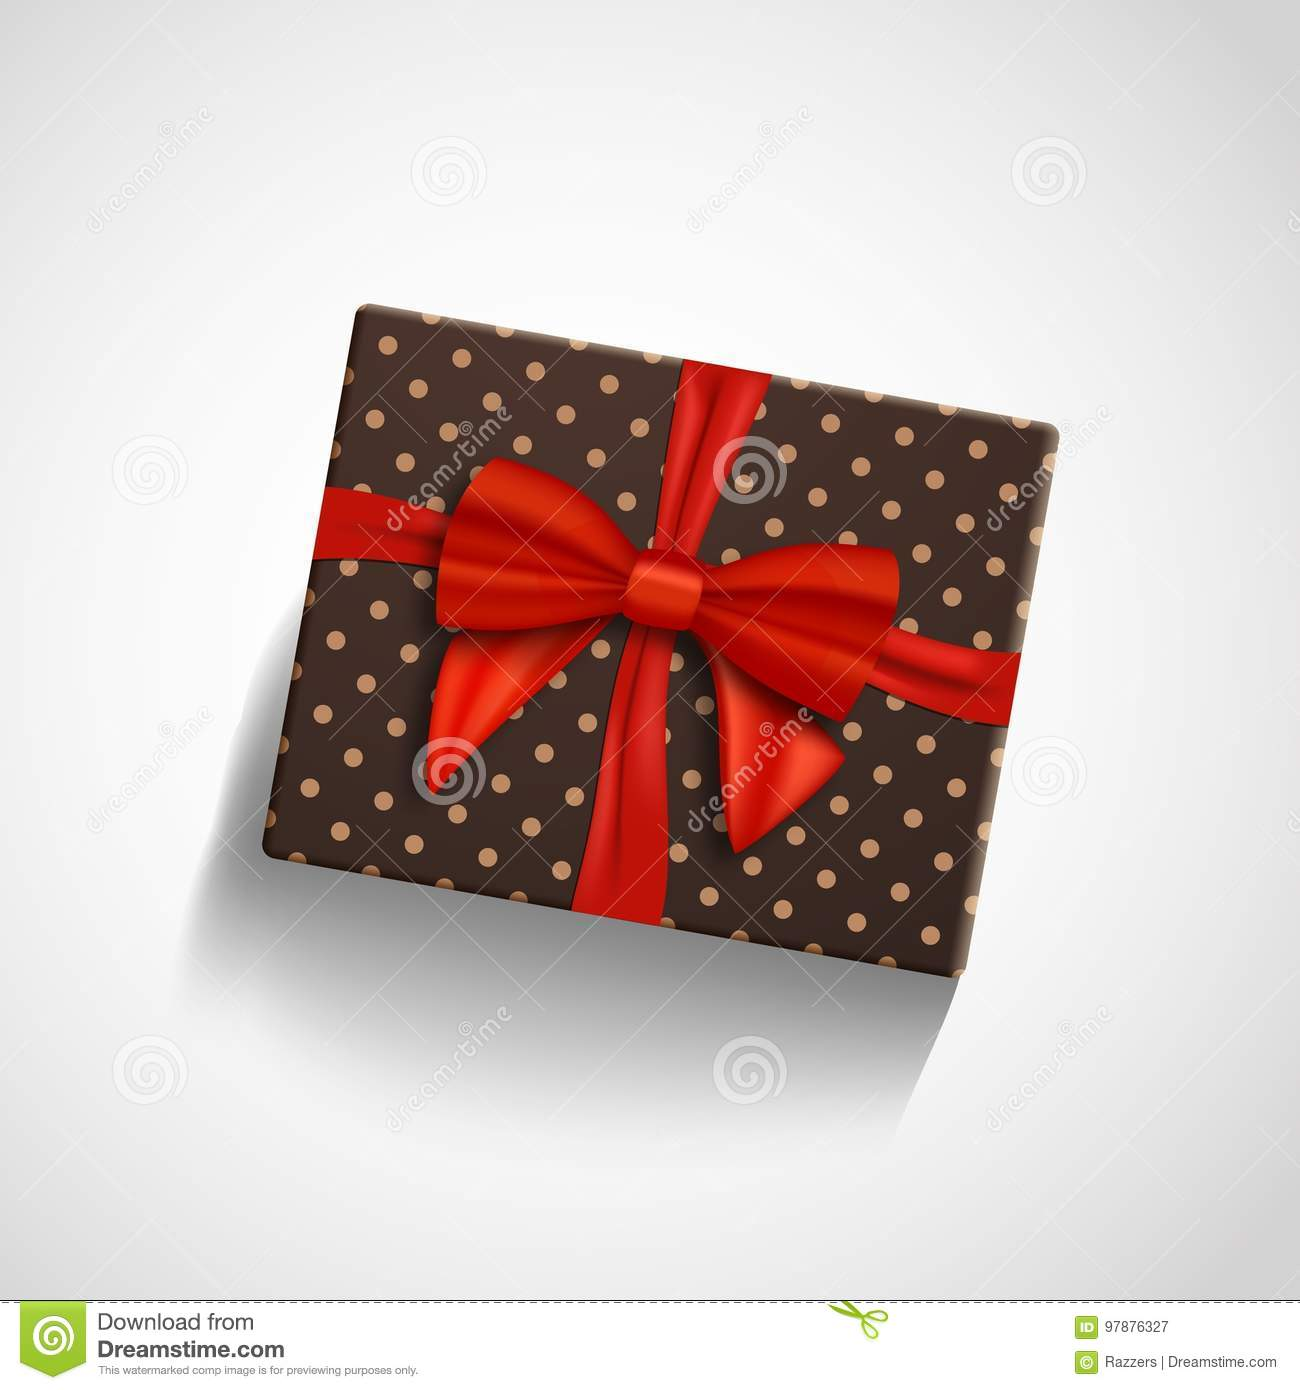 Gift Card in a Plaid Gift Box Various Card Designs